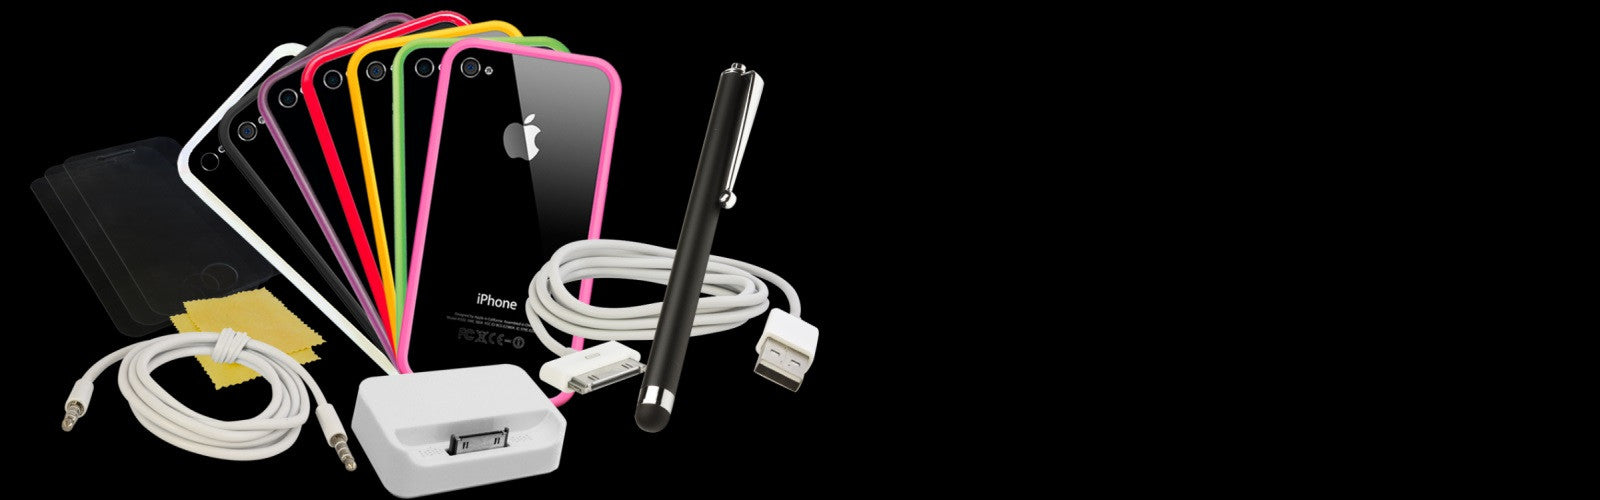 iphone accessories, ipad extras,chargers